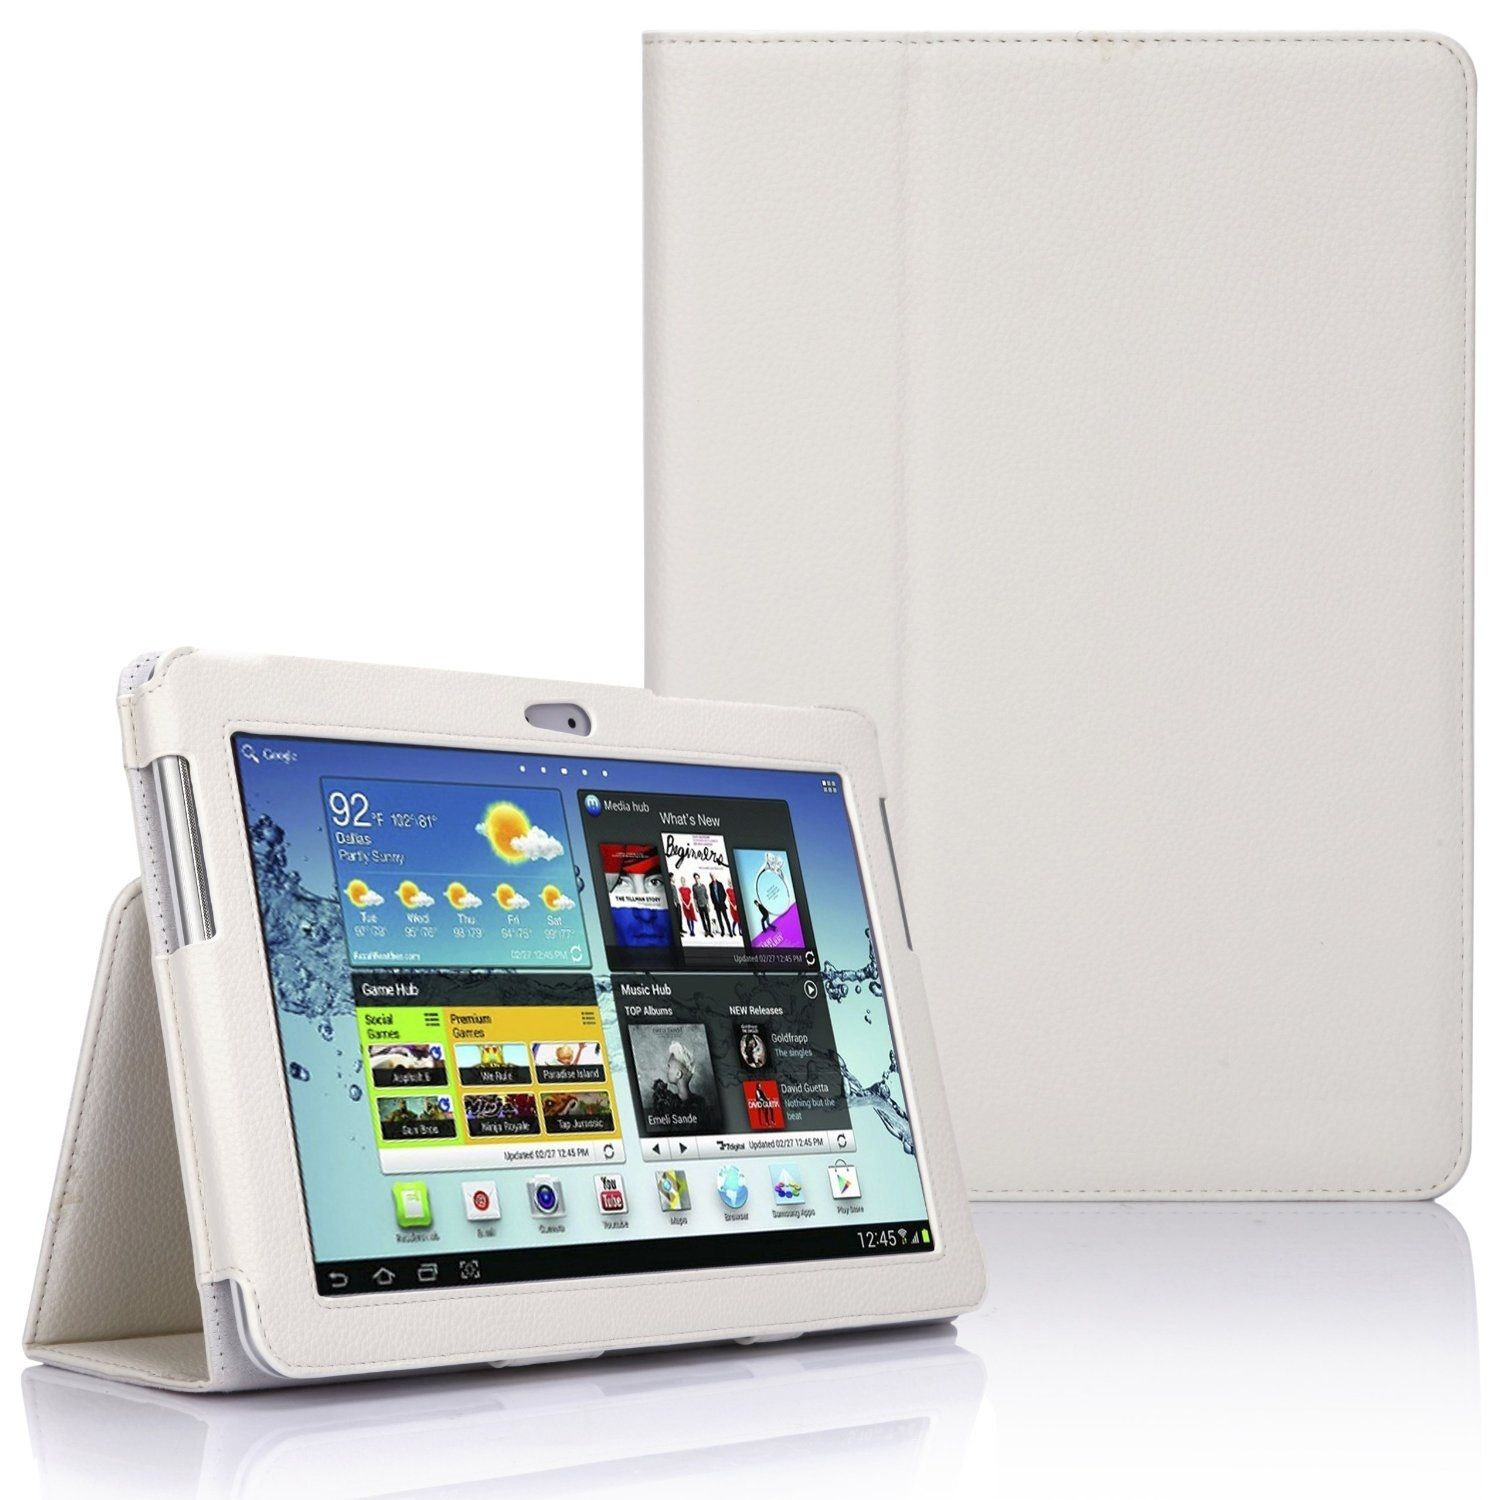 Samsung Galaxy TAB 2 10.1 P5100 - Leather Case Pack - White